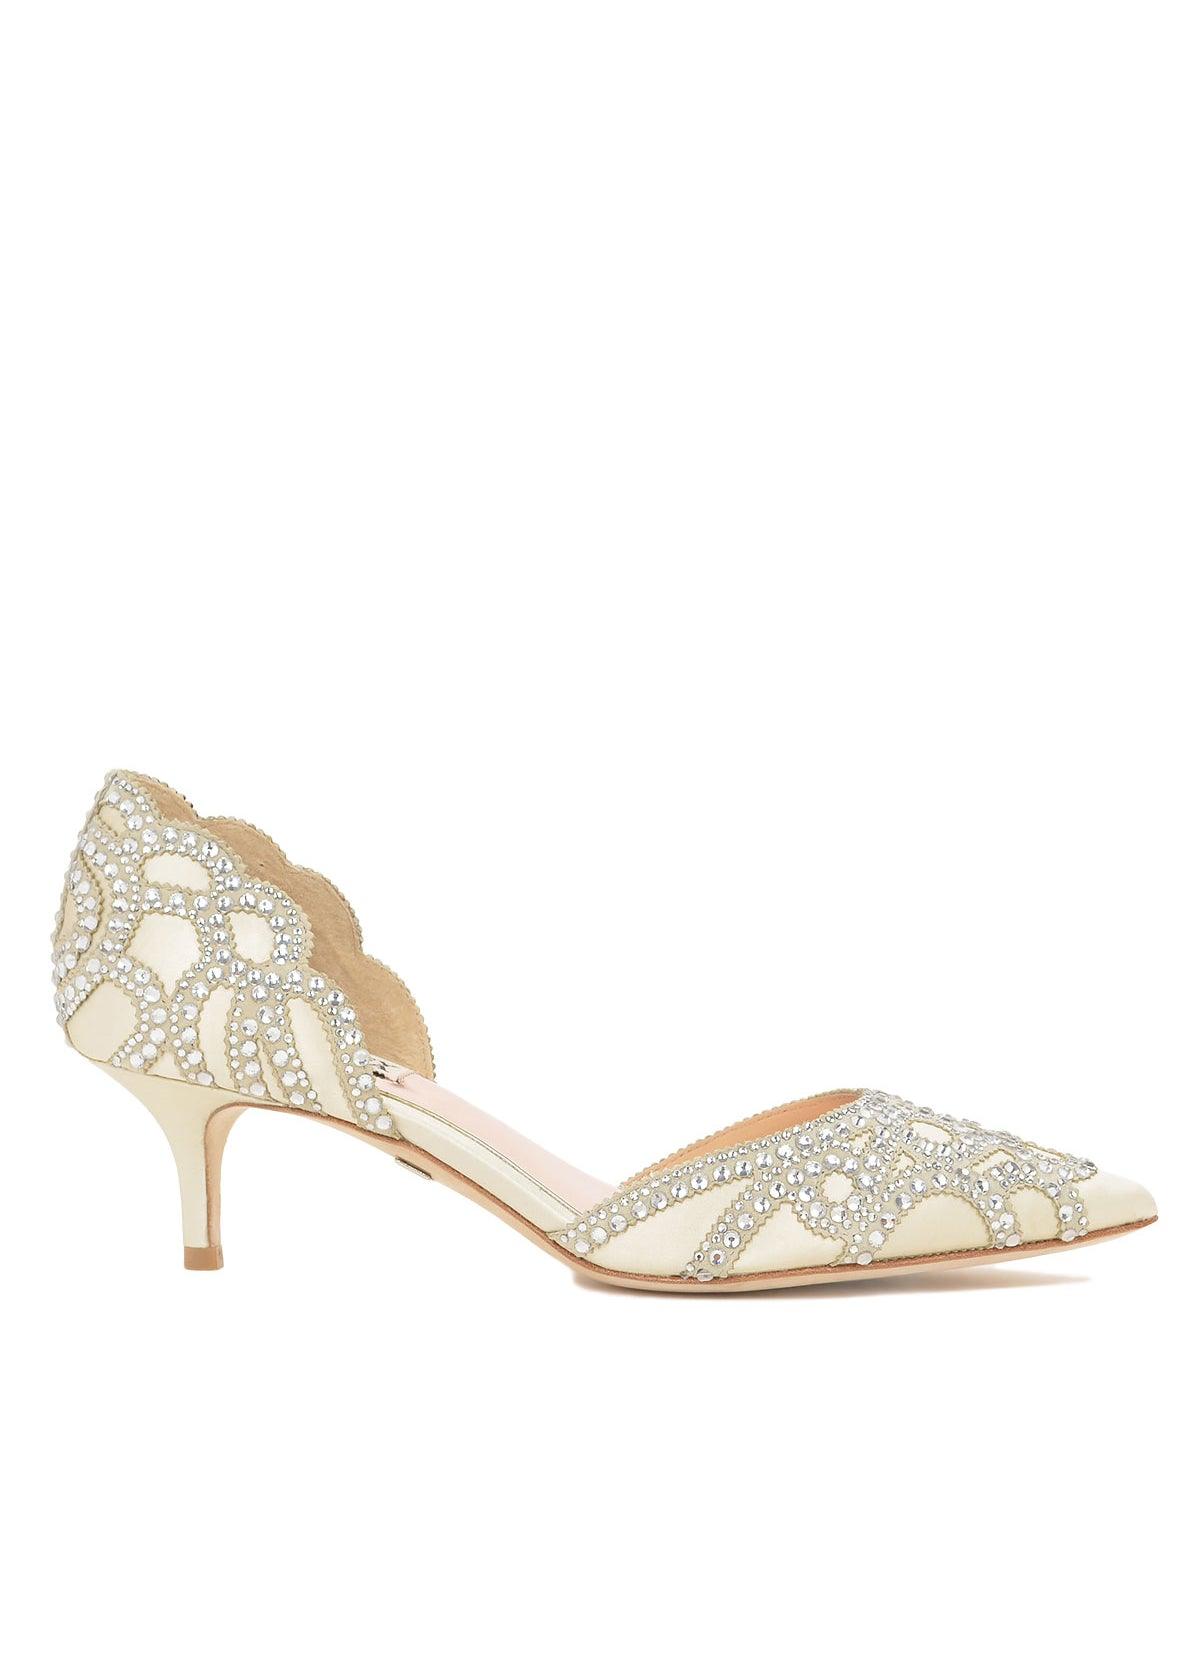 Ginny, Shoes, Badgley Mischka - Eternal Bridal